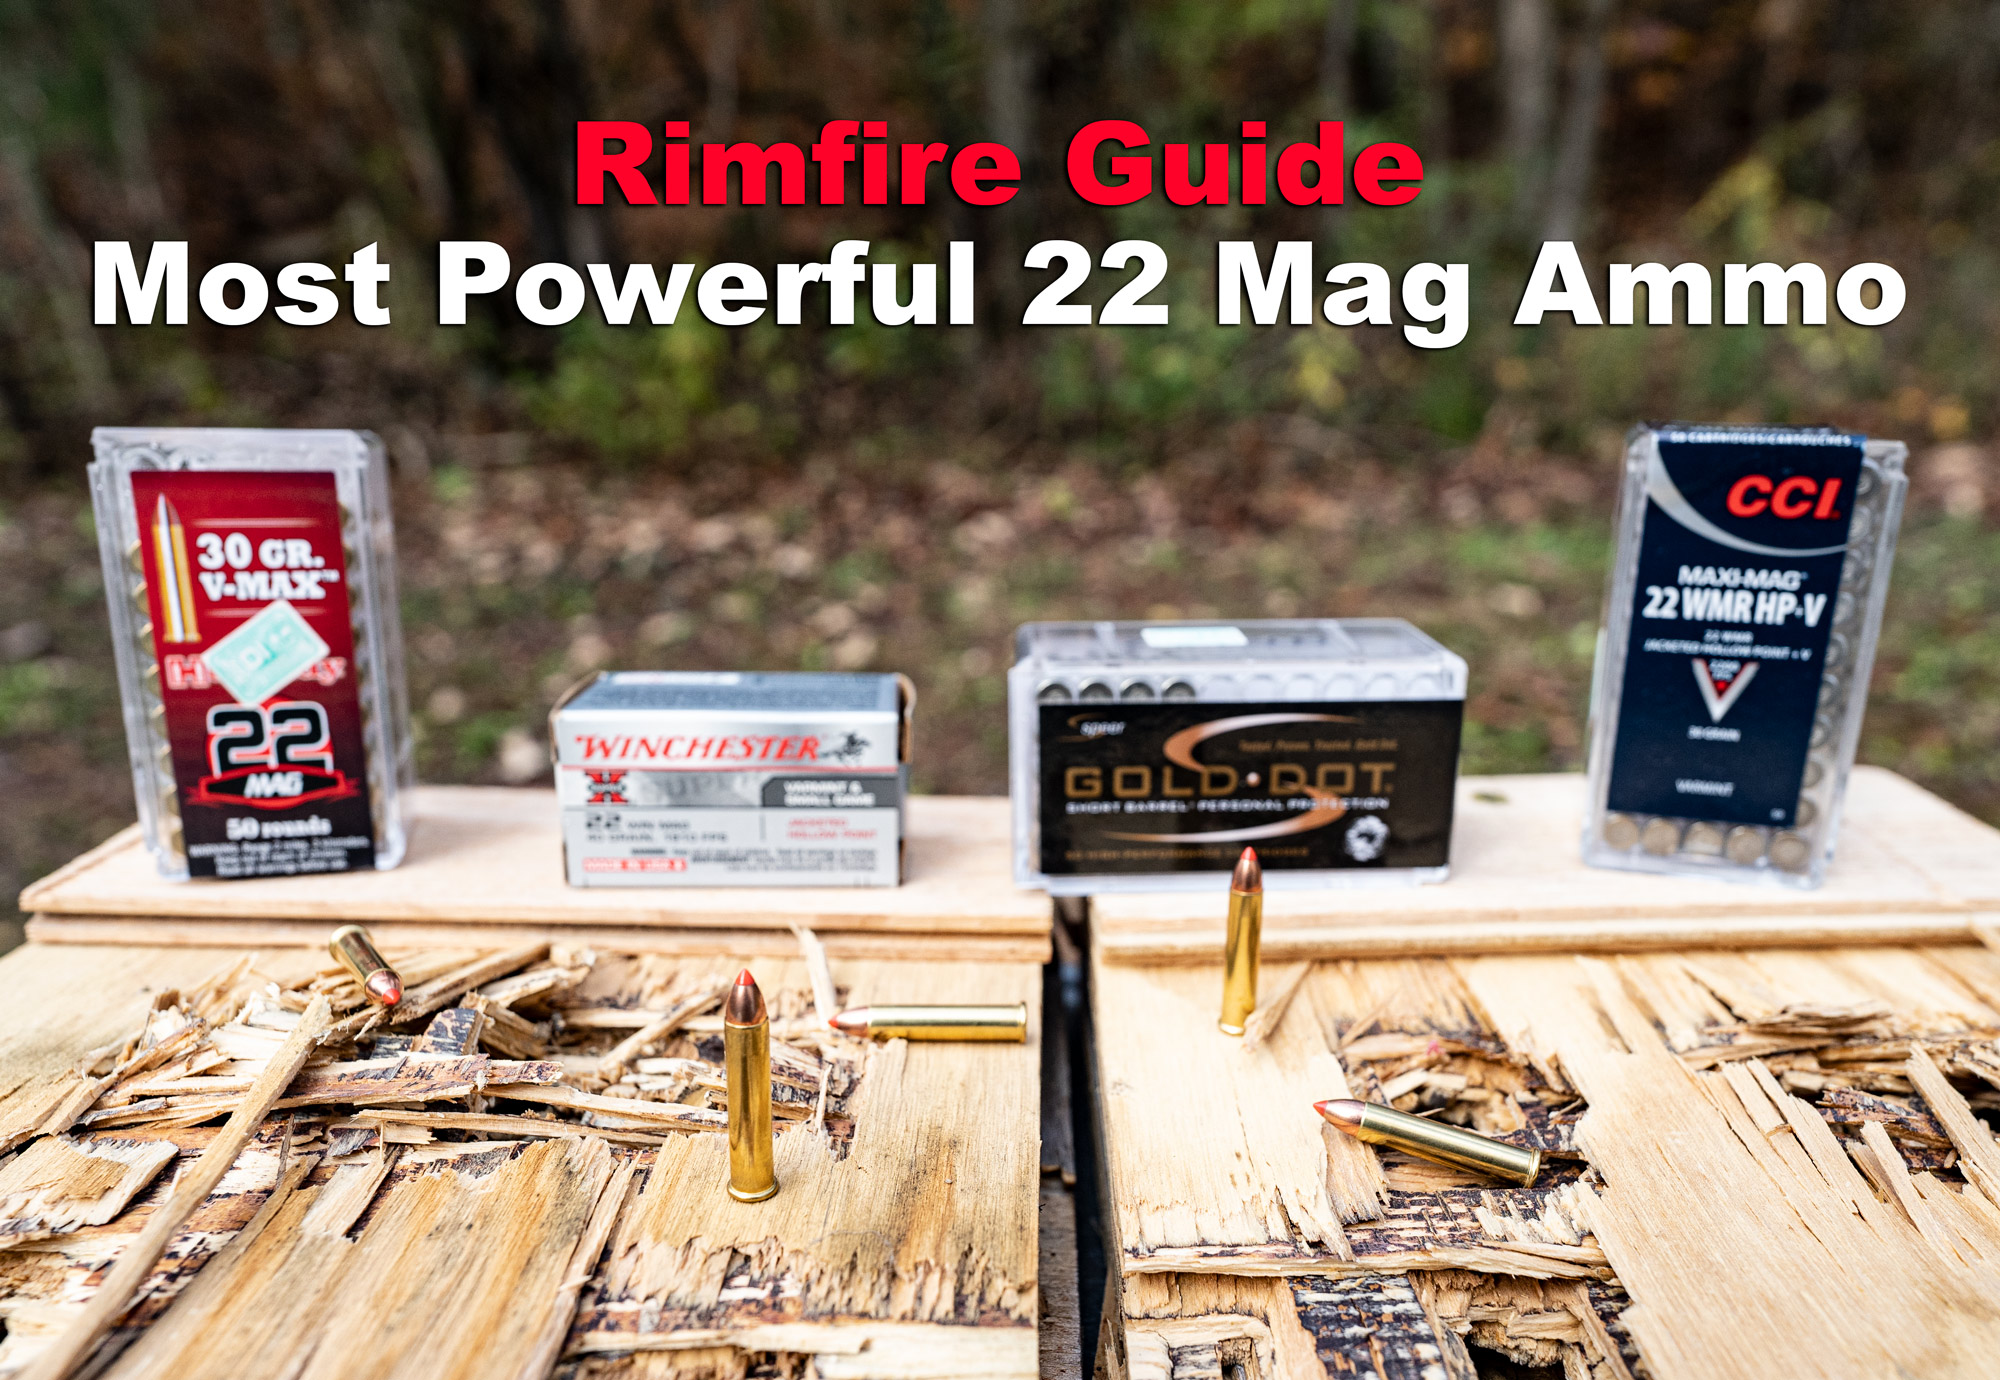 most powerful 22 mag ammo at a shooting range on a bench